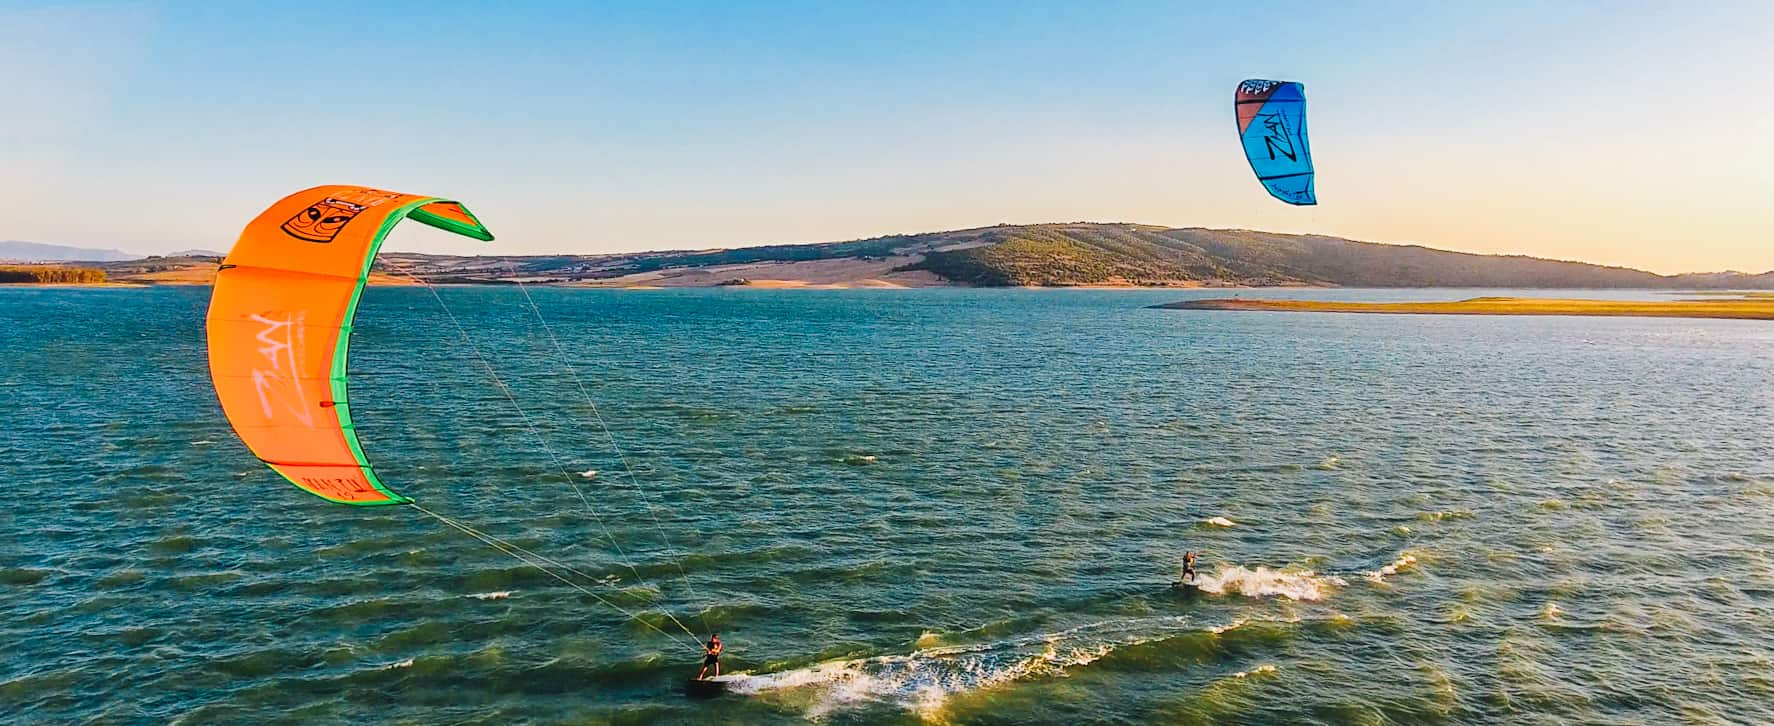 kiting alone in a lagoon